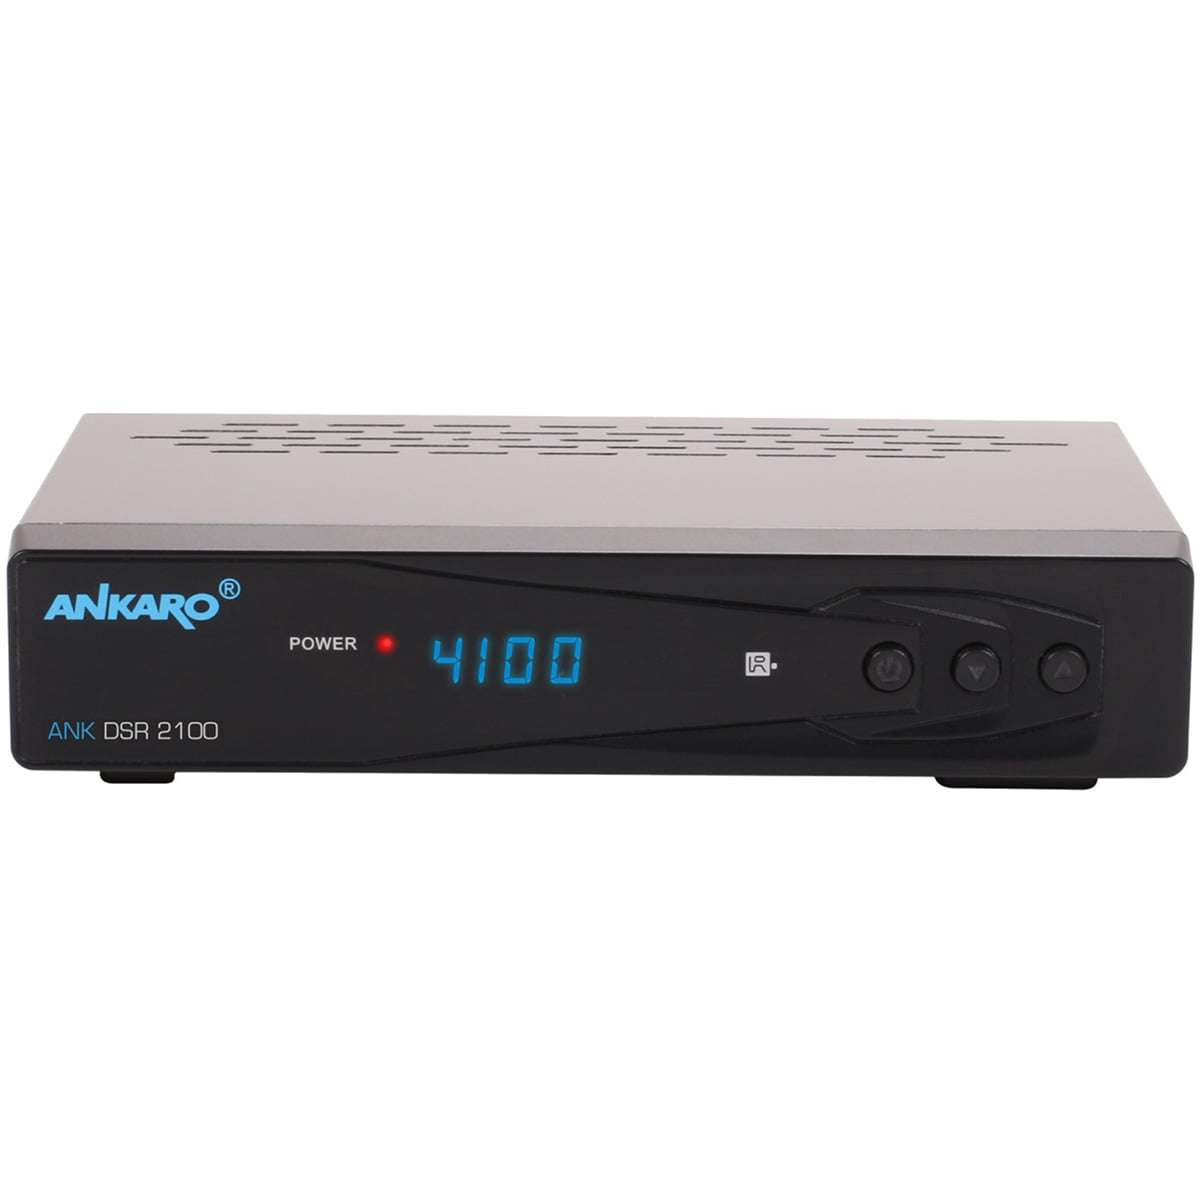 Ankaro ANK DSR 2100 Digitaler 1080p Full HD USB HDMI PVR DVB-S2 Satelliten Receiver Schwarz RECANK002